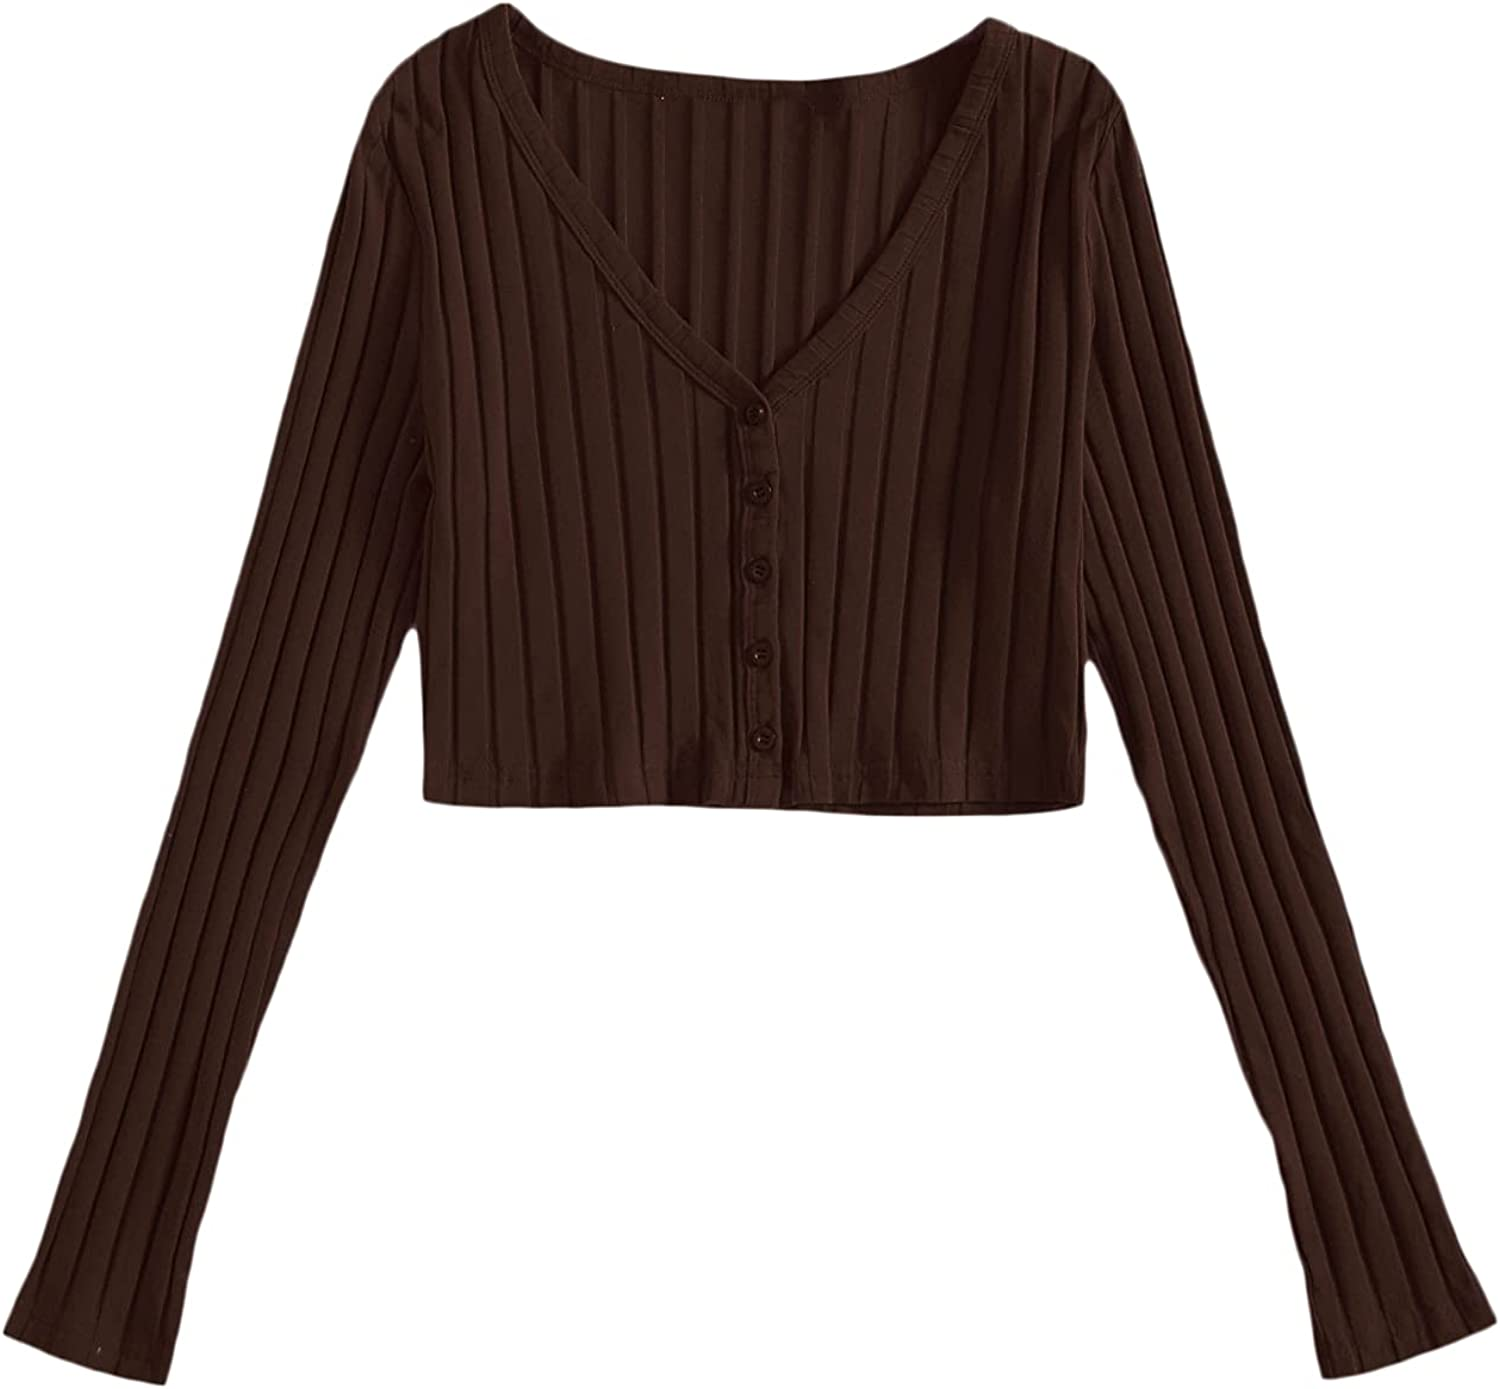 Floerns Women's Solid Button Down Long Sleeve V Neck Knit Cardigan Crop Tops